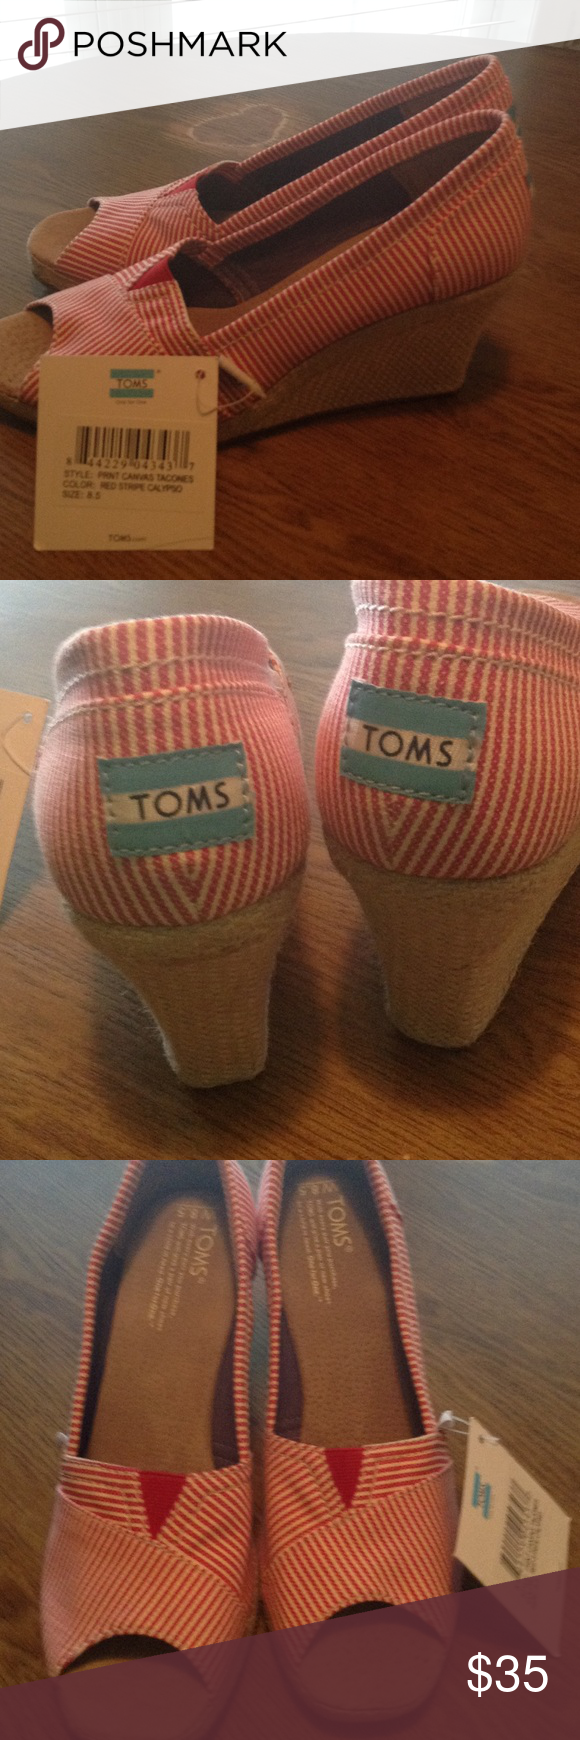 TOMS wedges red/striped 8.5 Never worn. Brand new condition. Super cute! Still have original tags. TOMS Shoes Wedges